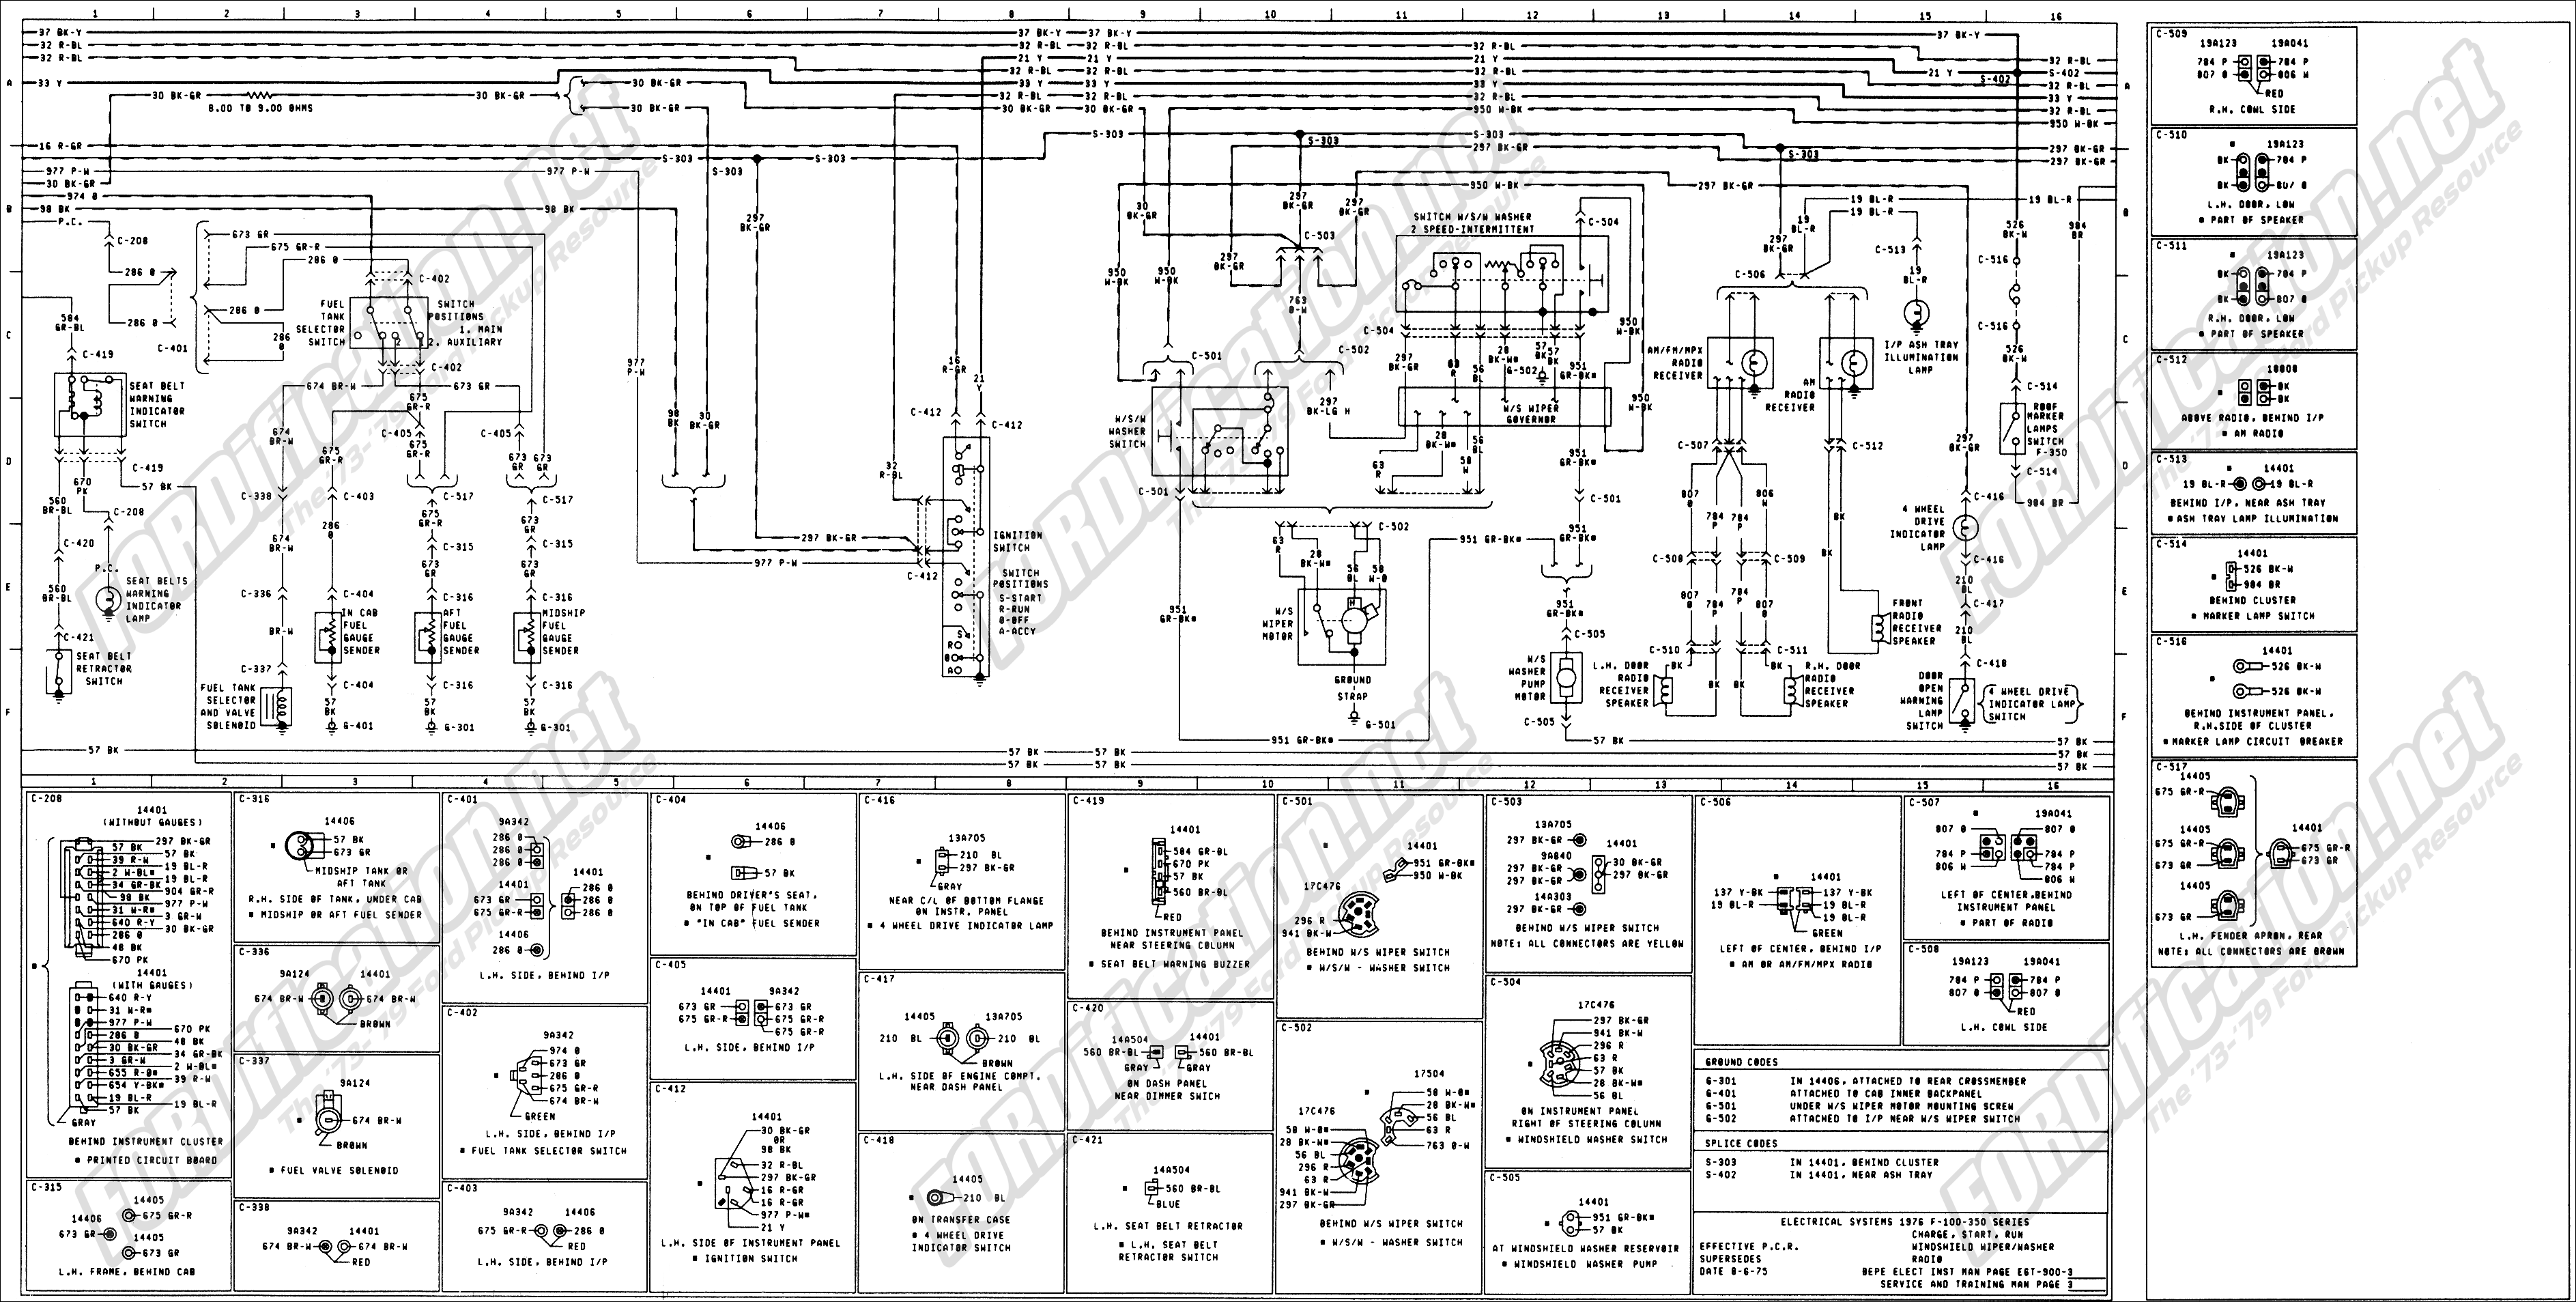 wiring_76master_3of9 1973 1979 ford truck wiring diagrams & schematics fordification net Ford 3 Wire Alternator Diagram at webbmarketing.co